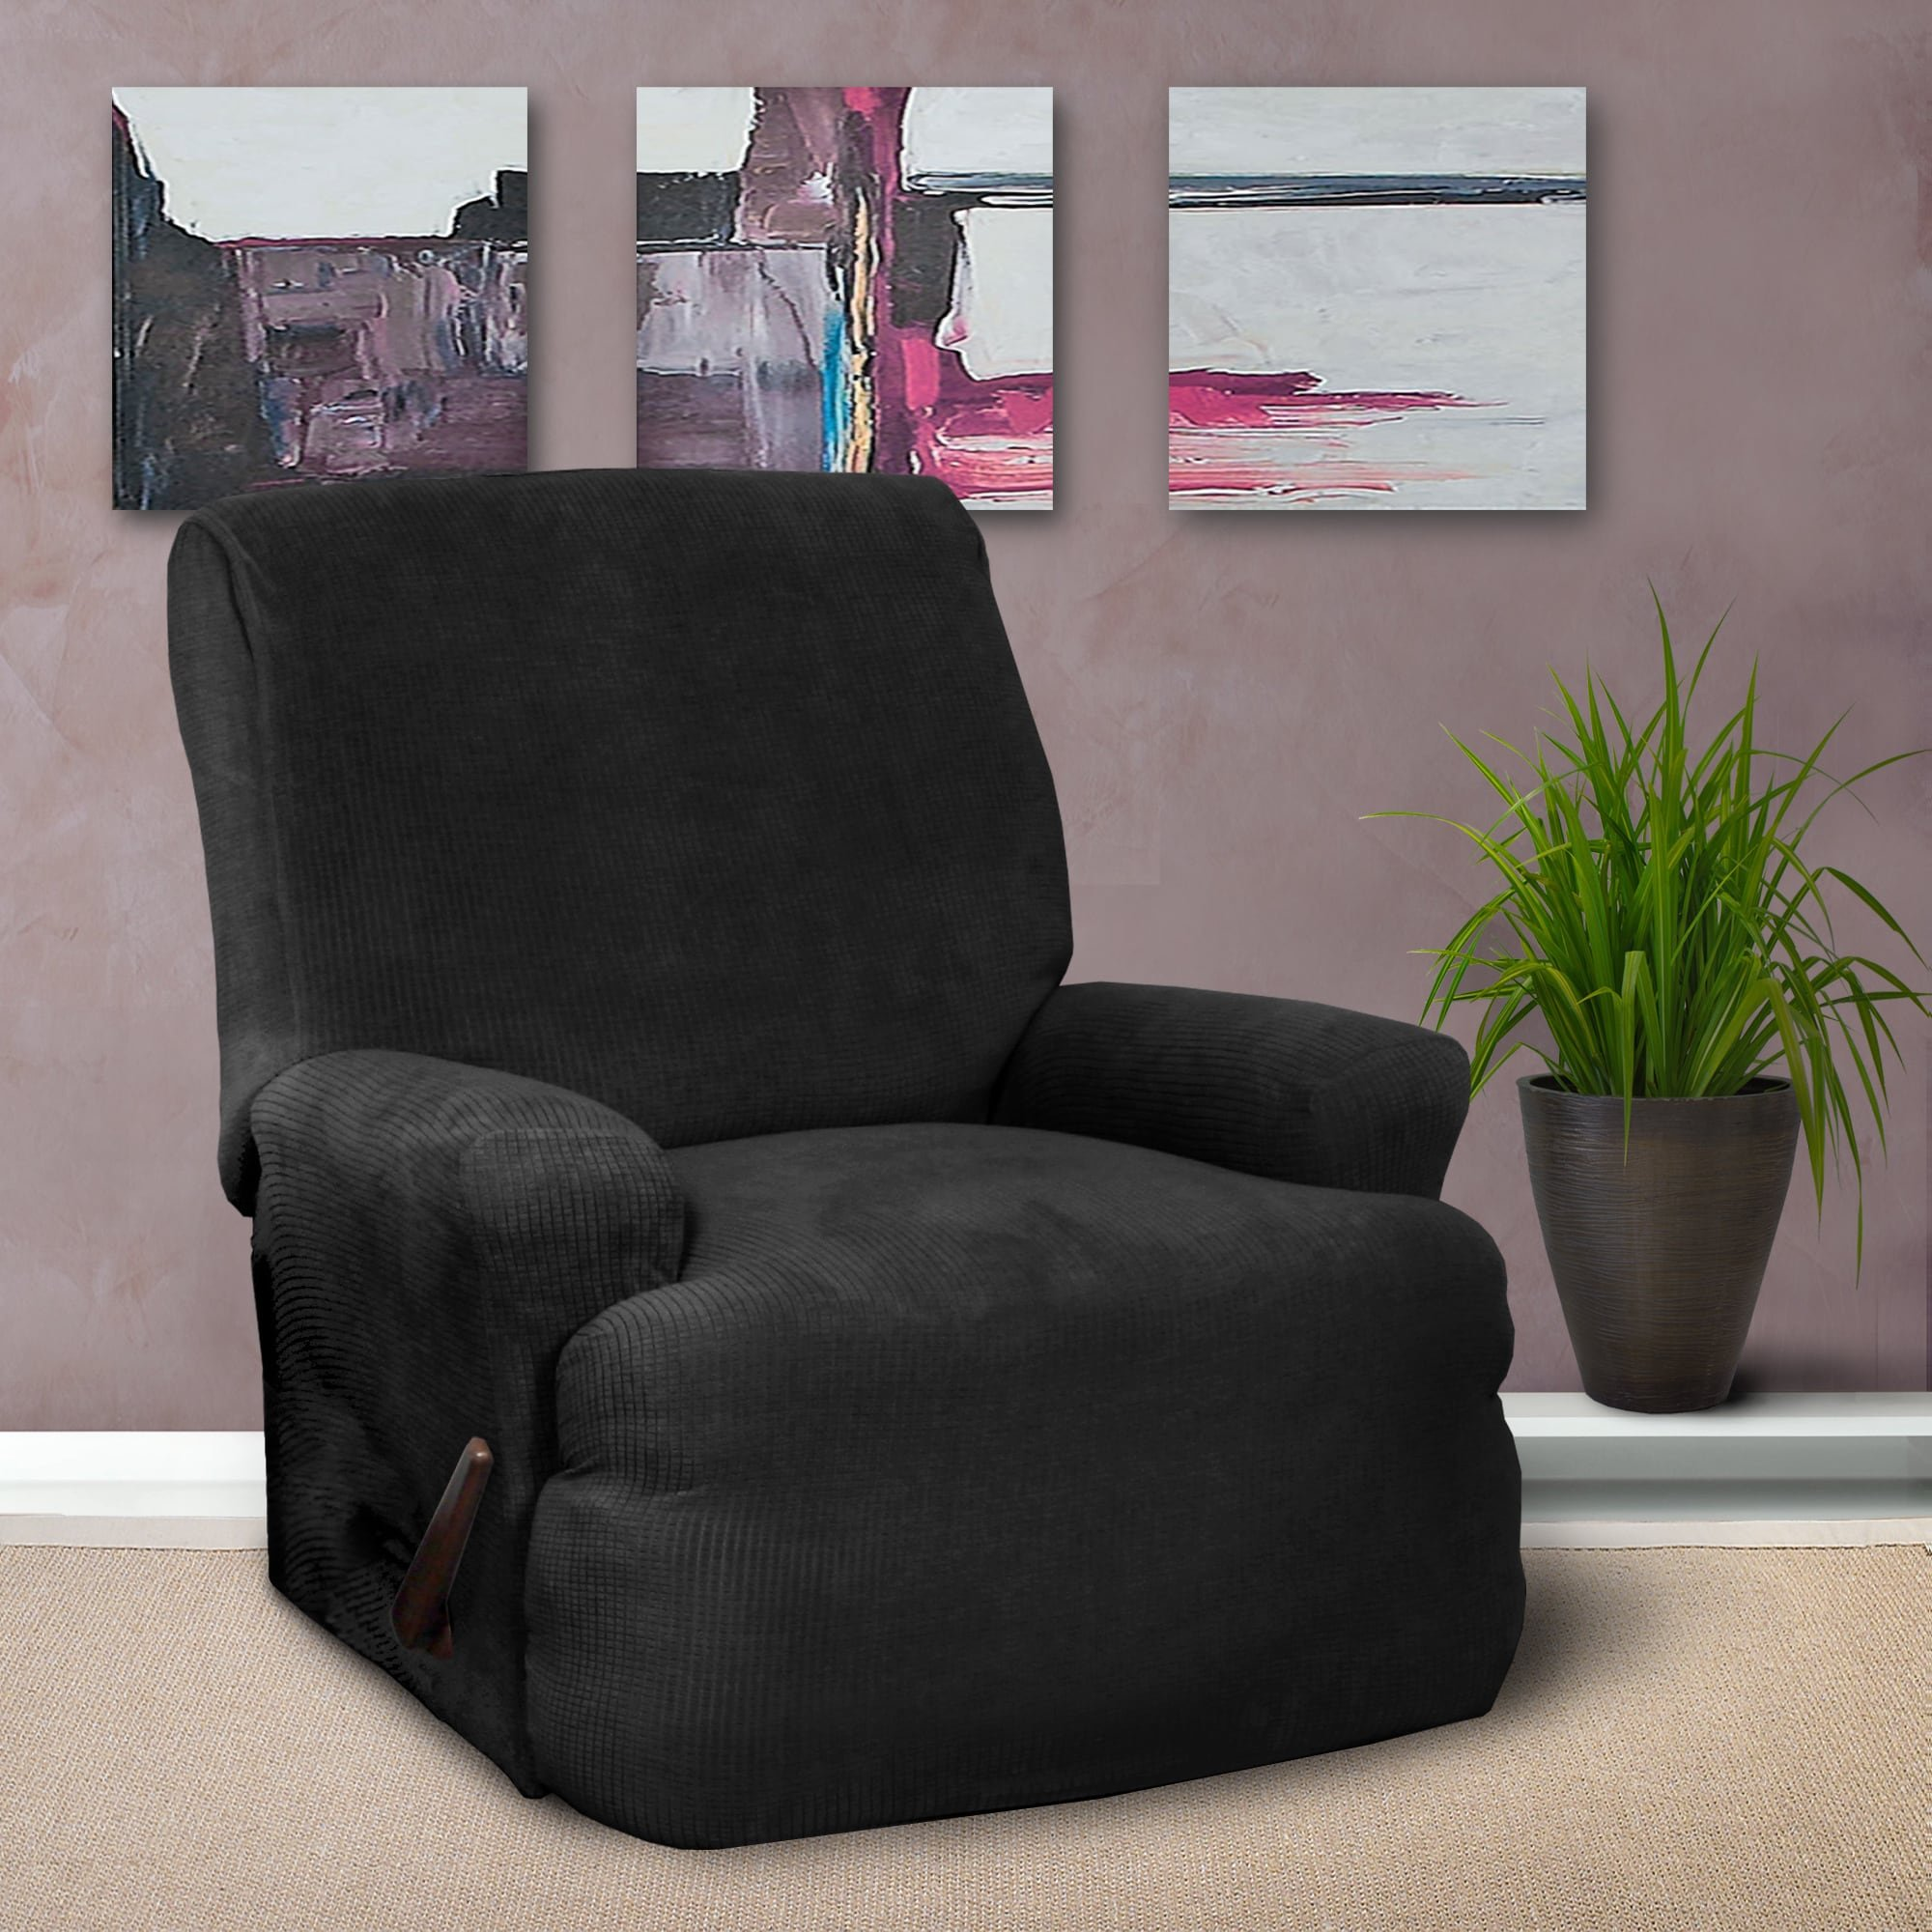 Coverworks Montgomery Black 1-piece Classic Stretch Recliner Slipcover by Coverworks